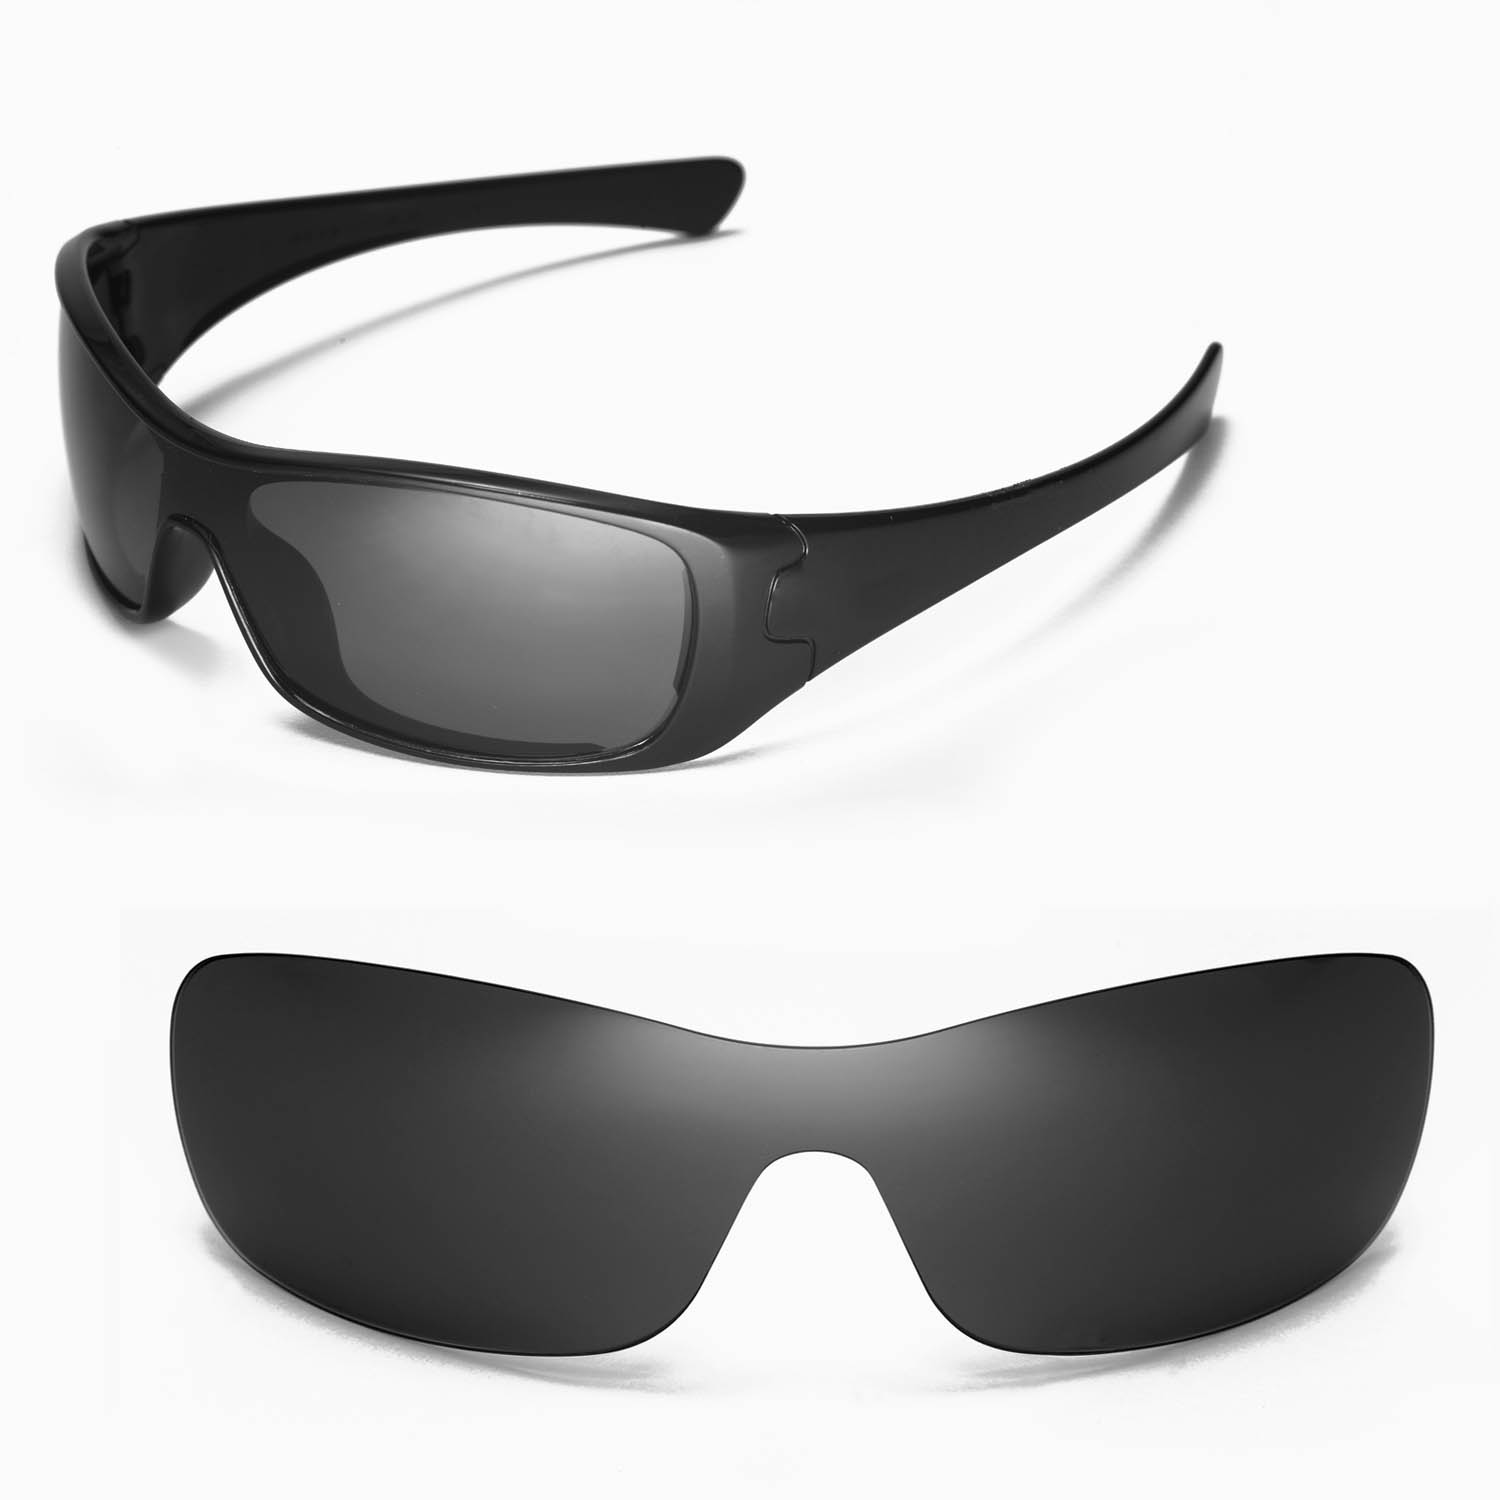 a674a55760e Details about New Walleva Polarized Black Replacement Lenses For Oakley  Antix Sunglasses